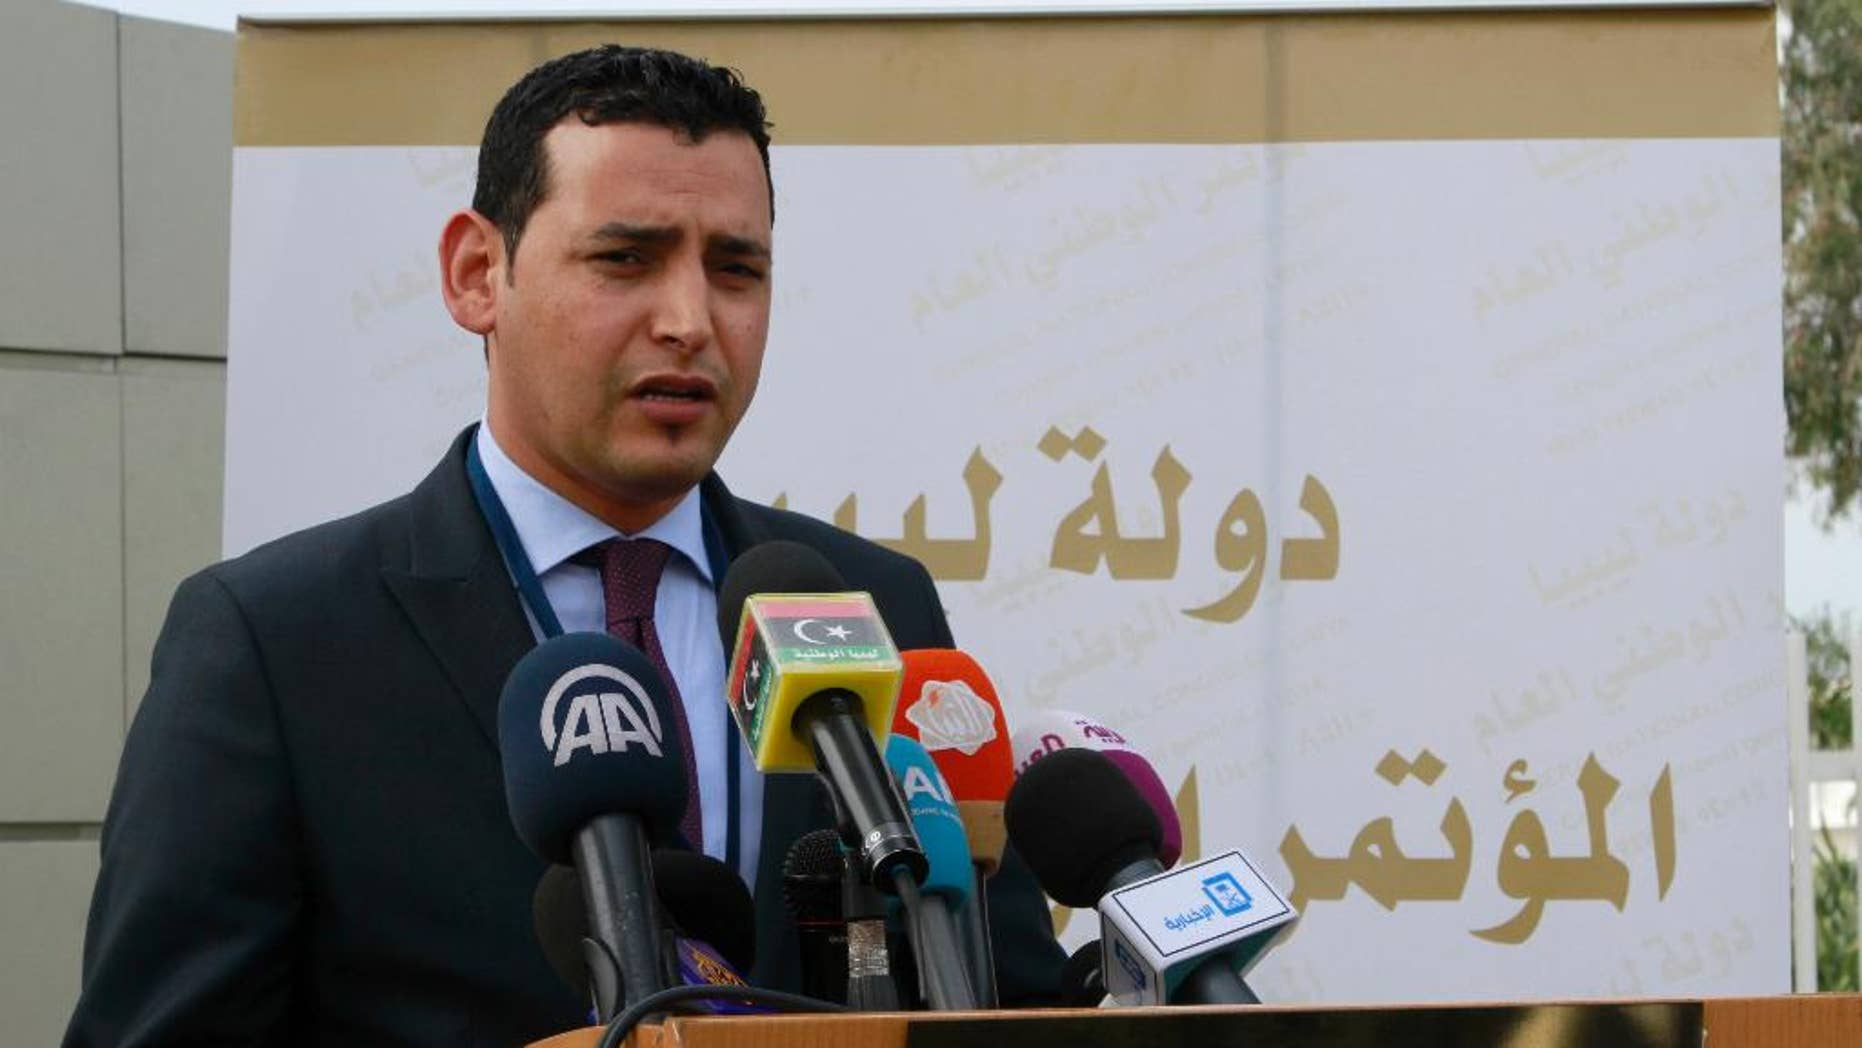 A delegation member of the Tripoli-based General National Congress, Omar Hmeidan speaks to reporters outside the conference center in Skhirat, Morocco on Friday, March 13, 2015 during the U.N.-sponsored Libyan peace talks. The fate of the talks has  been thrown into doubt after the delegation from the internationally recognized parliament in Tobruk did not show up. (AP/Paul Schemm)